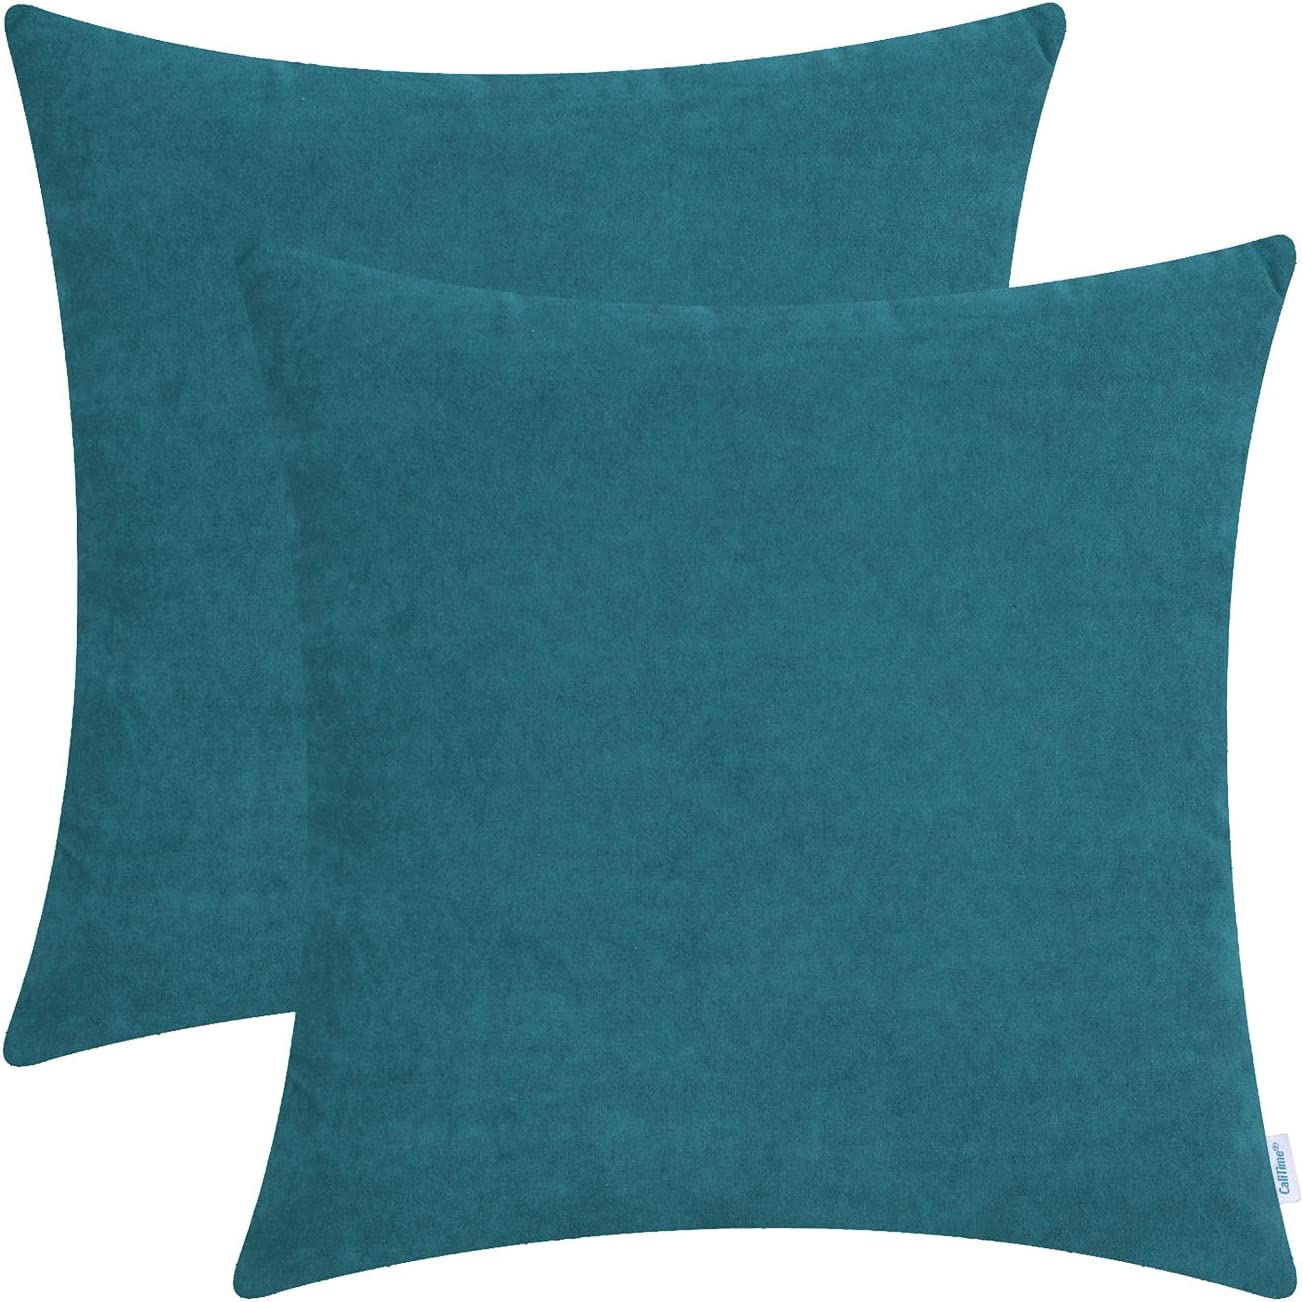 CaliTime Pack of 2 Cozy Throw Pillow Covers Cases for Couch Sofa Home Decoration Solid Dyed Soft Velvet 18 X 18 Inches Teal